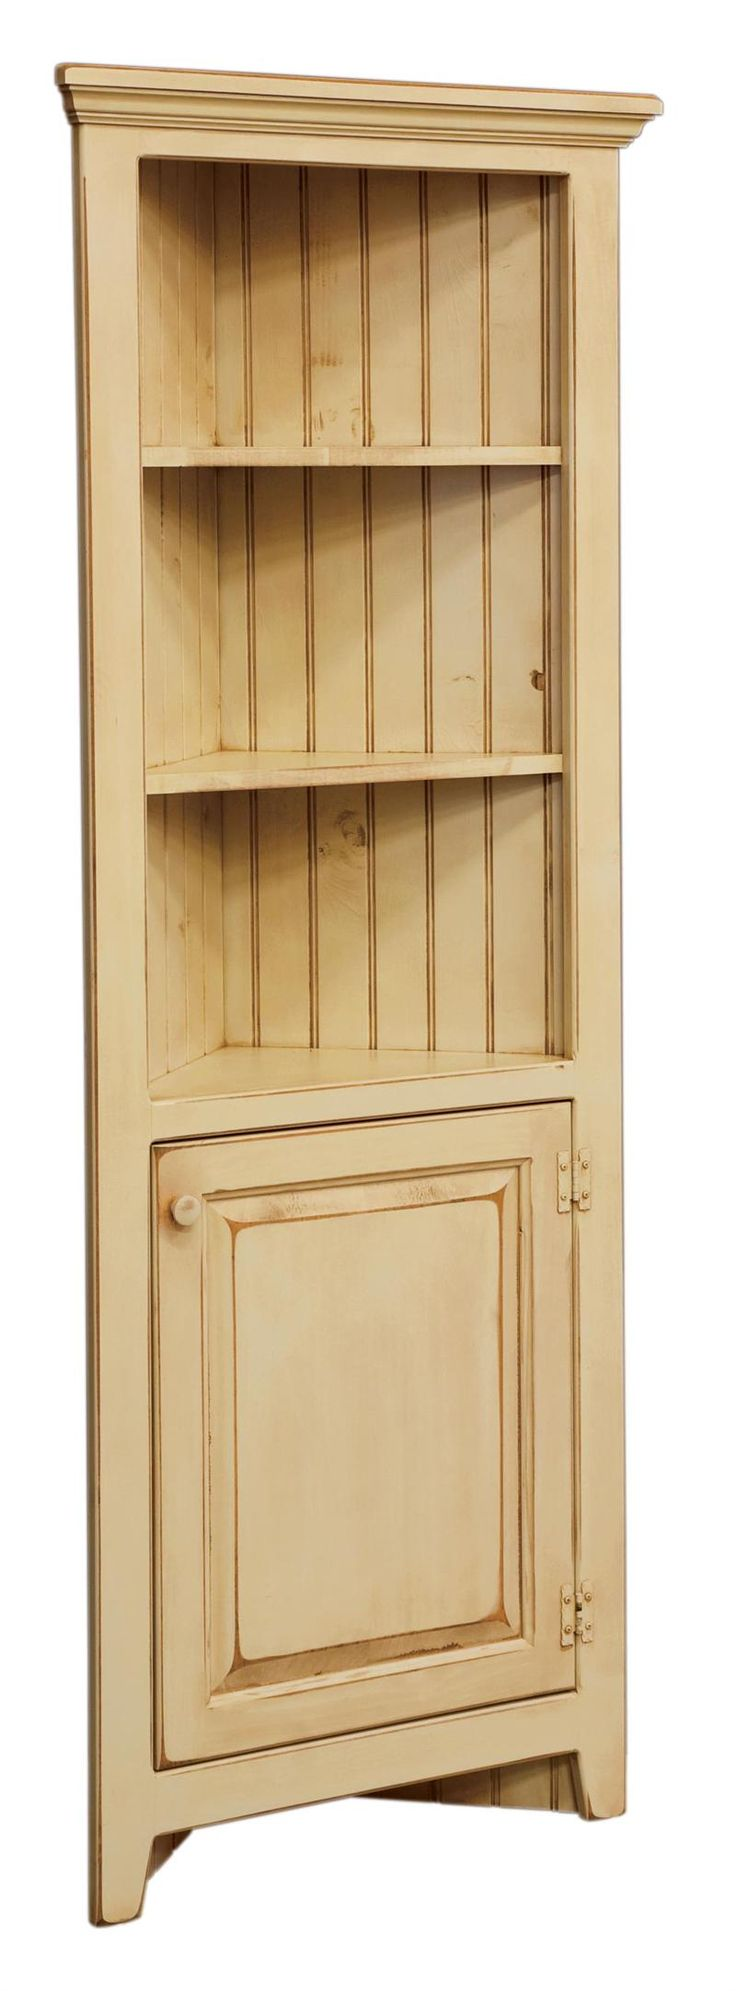 Build Corner Curio Cabinet - WoodWorking Projects & Plans